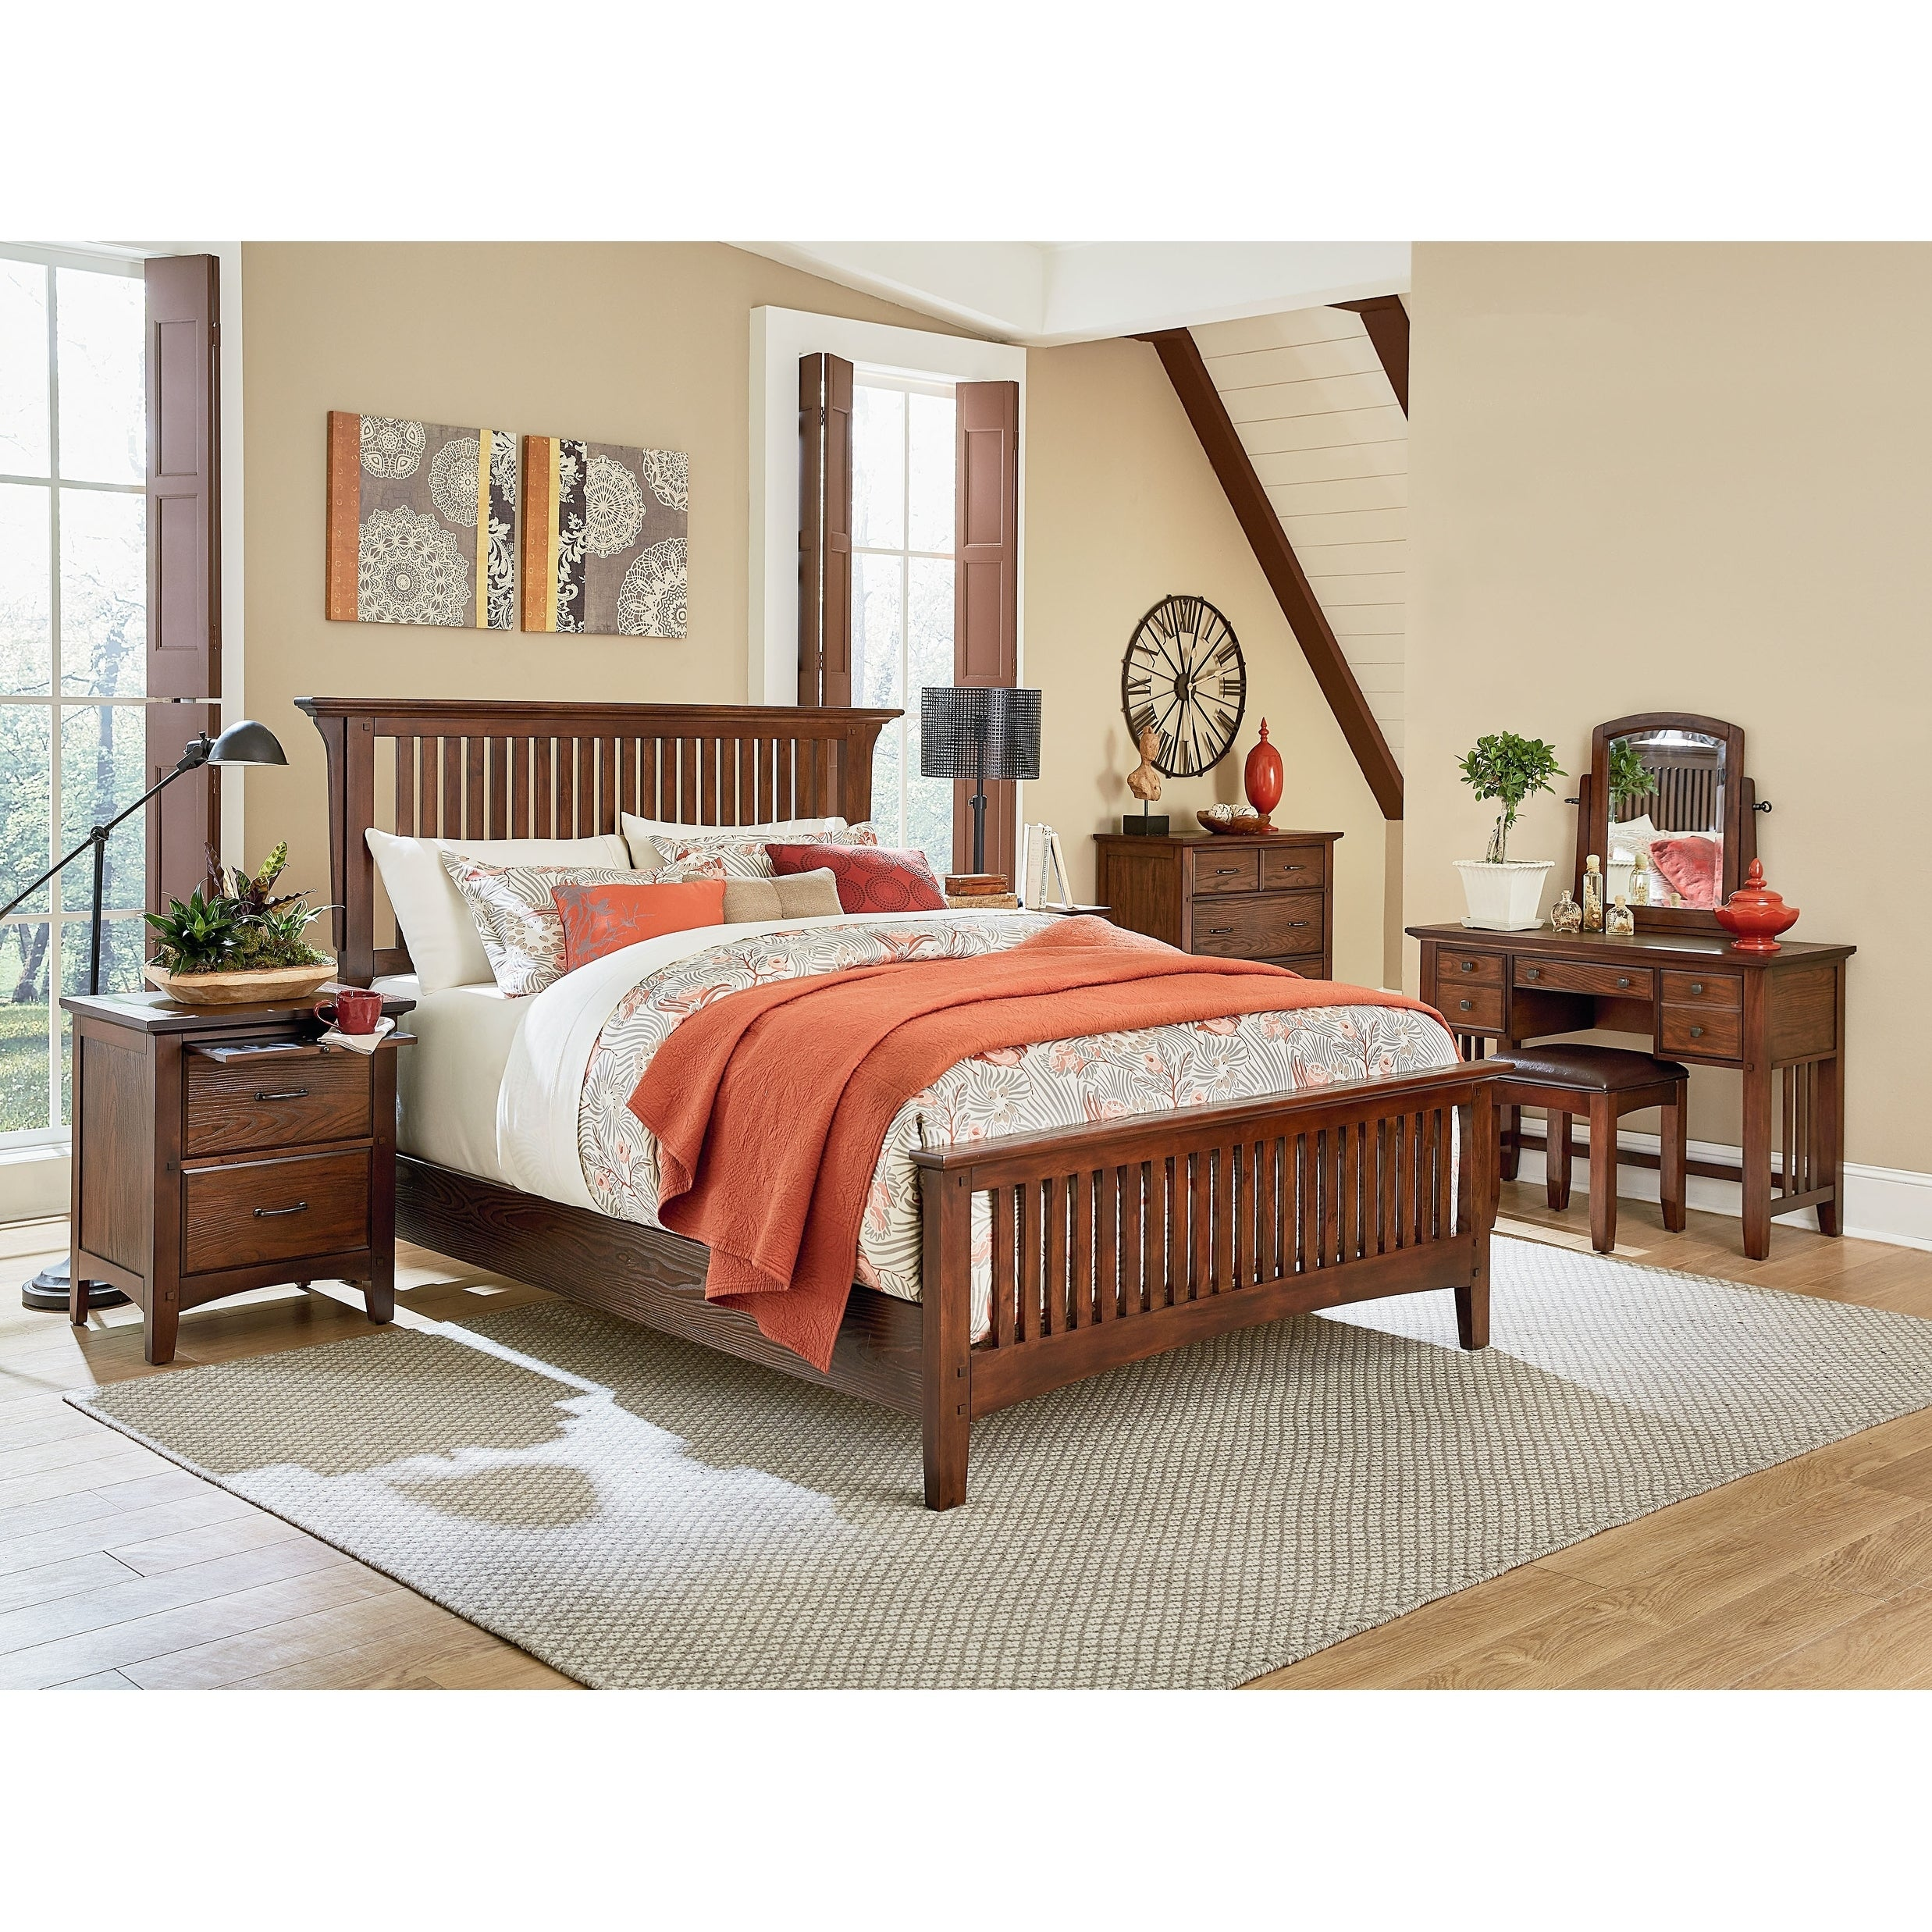 Modern Mission King Bedroom Set With 2 Nightstands 1 Chest And 1 Vanity With Bench Overstock 21174616